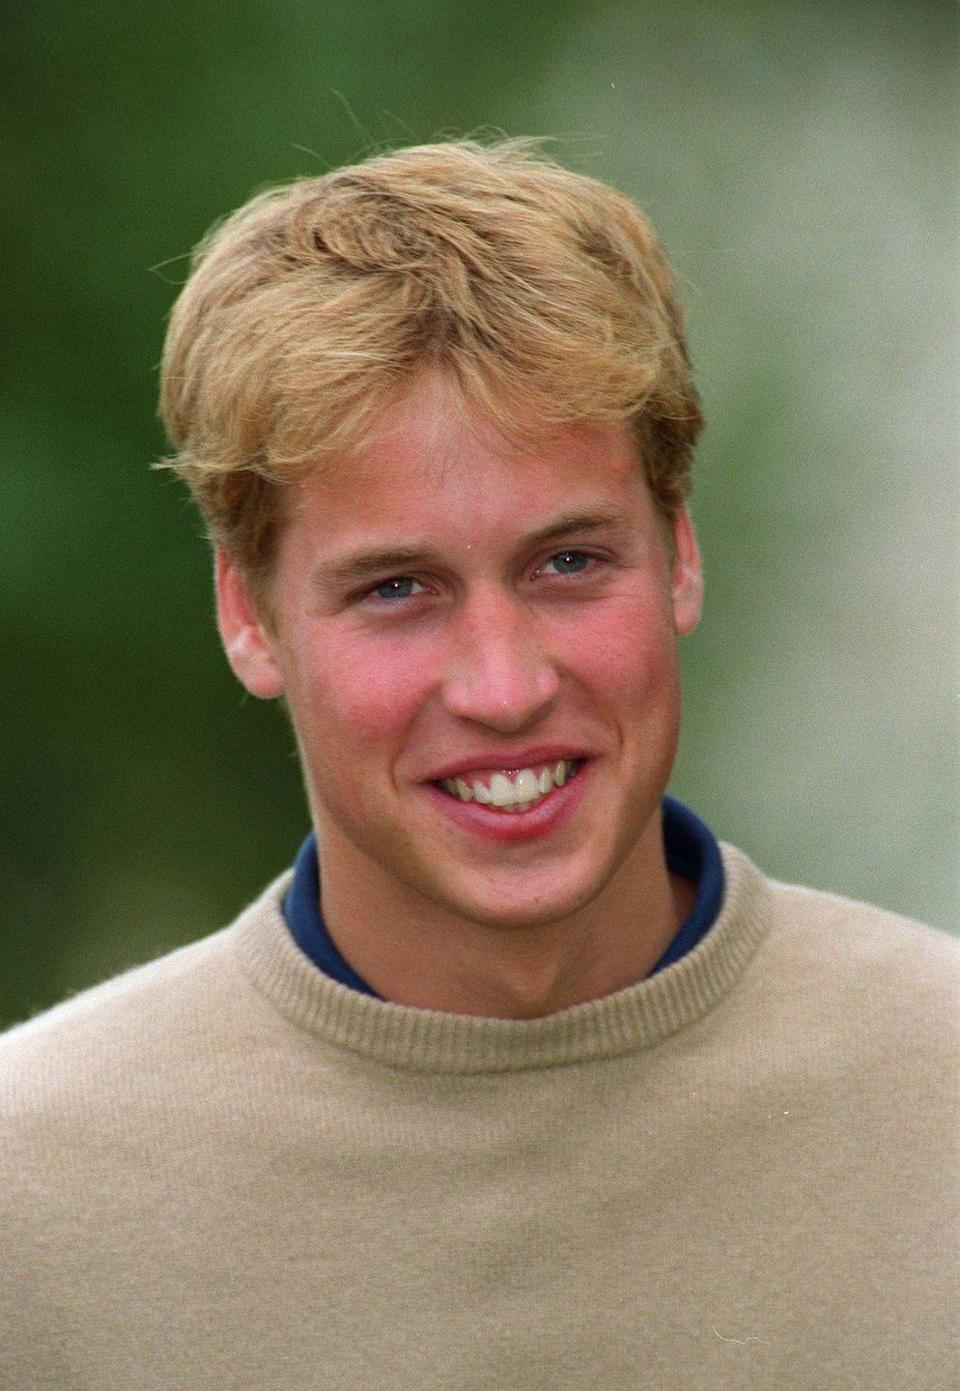 <p>MAKE! PRINCE! WILLIAM! HAVE! MIDDLE! PARTED! BANGS! AGAIN!</p>